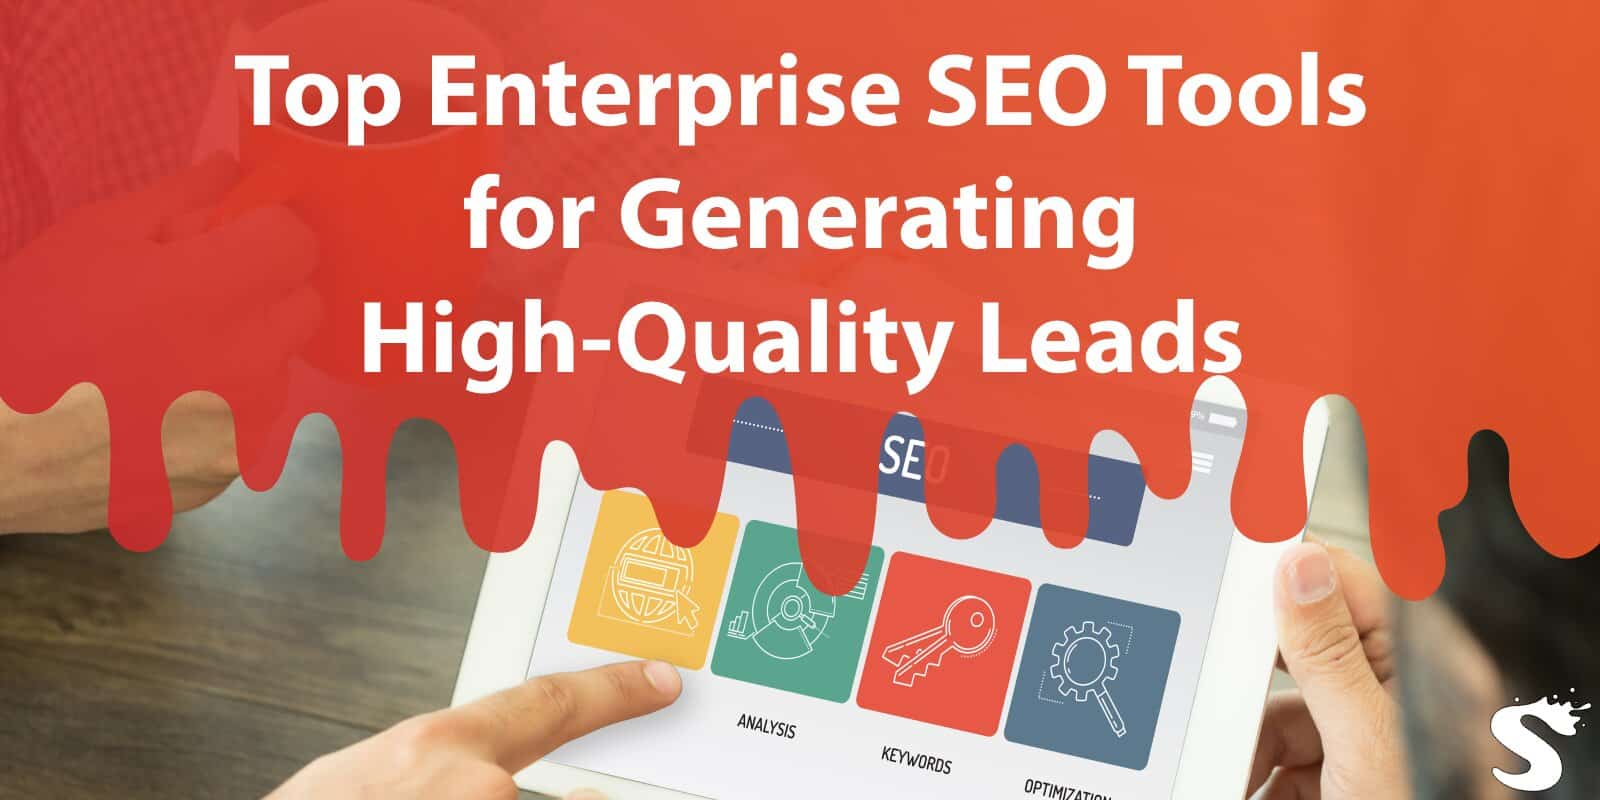 Top Enterprise Seo Tools for Generating High-quality Leads